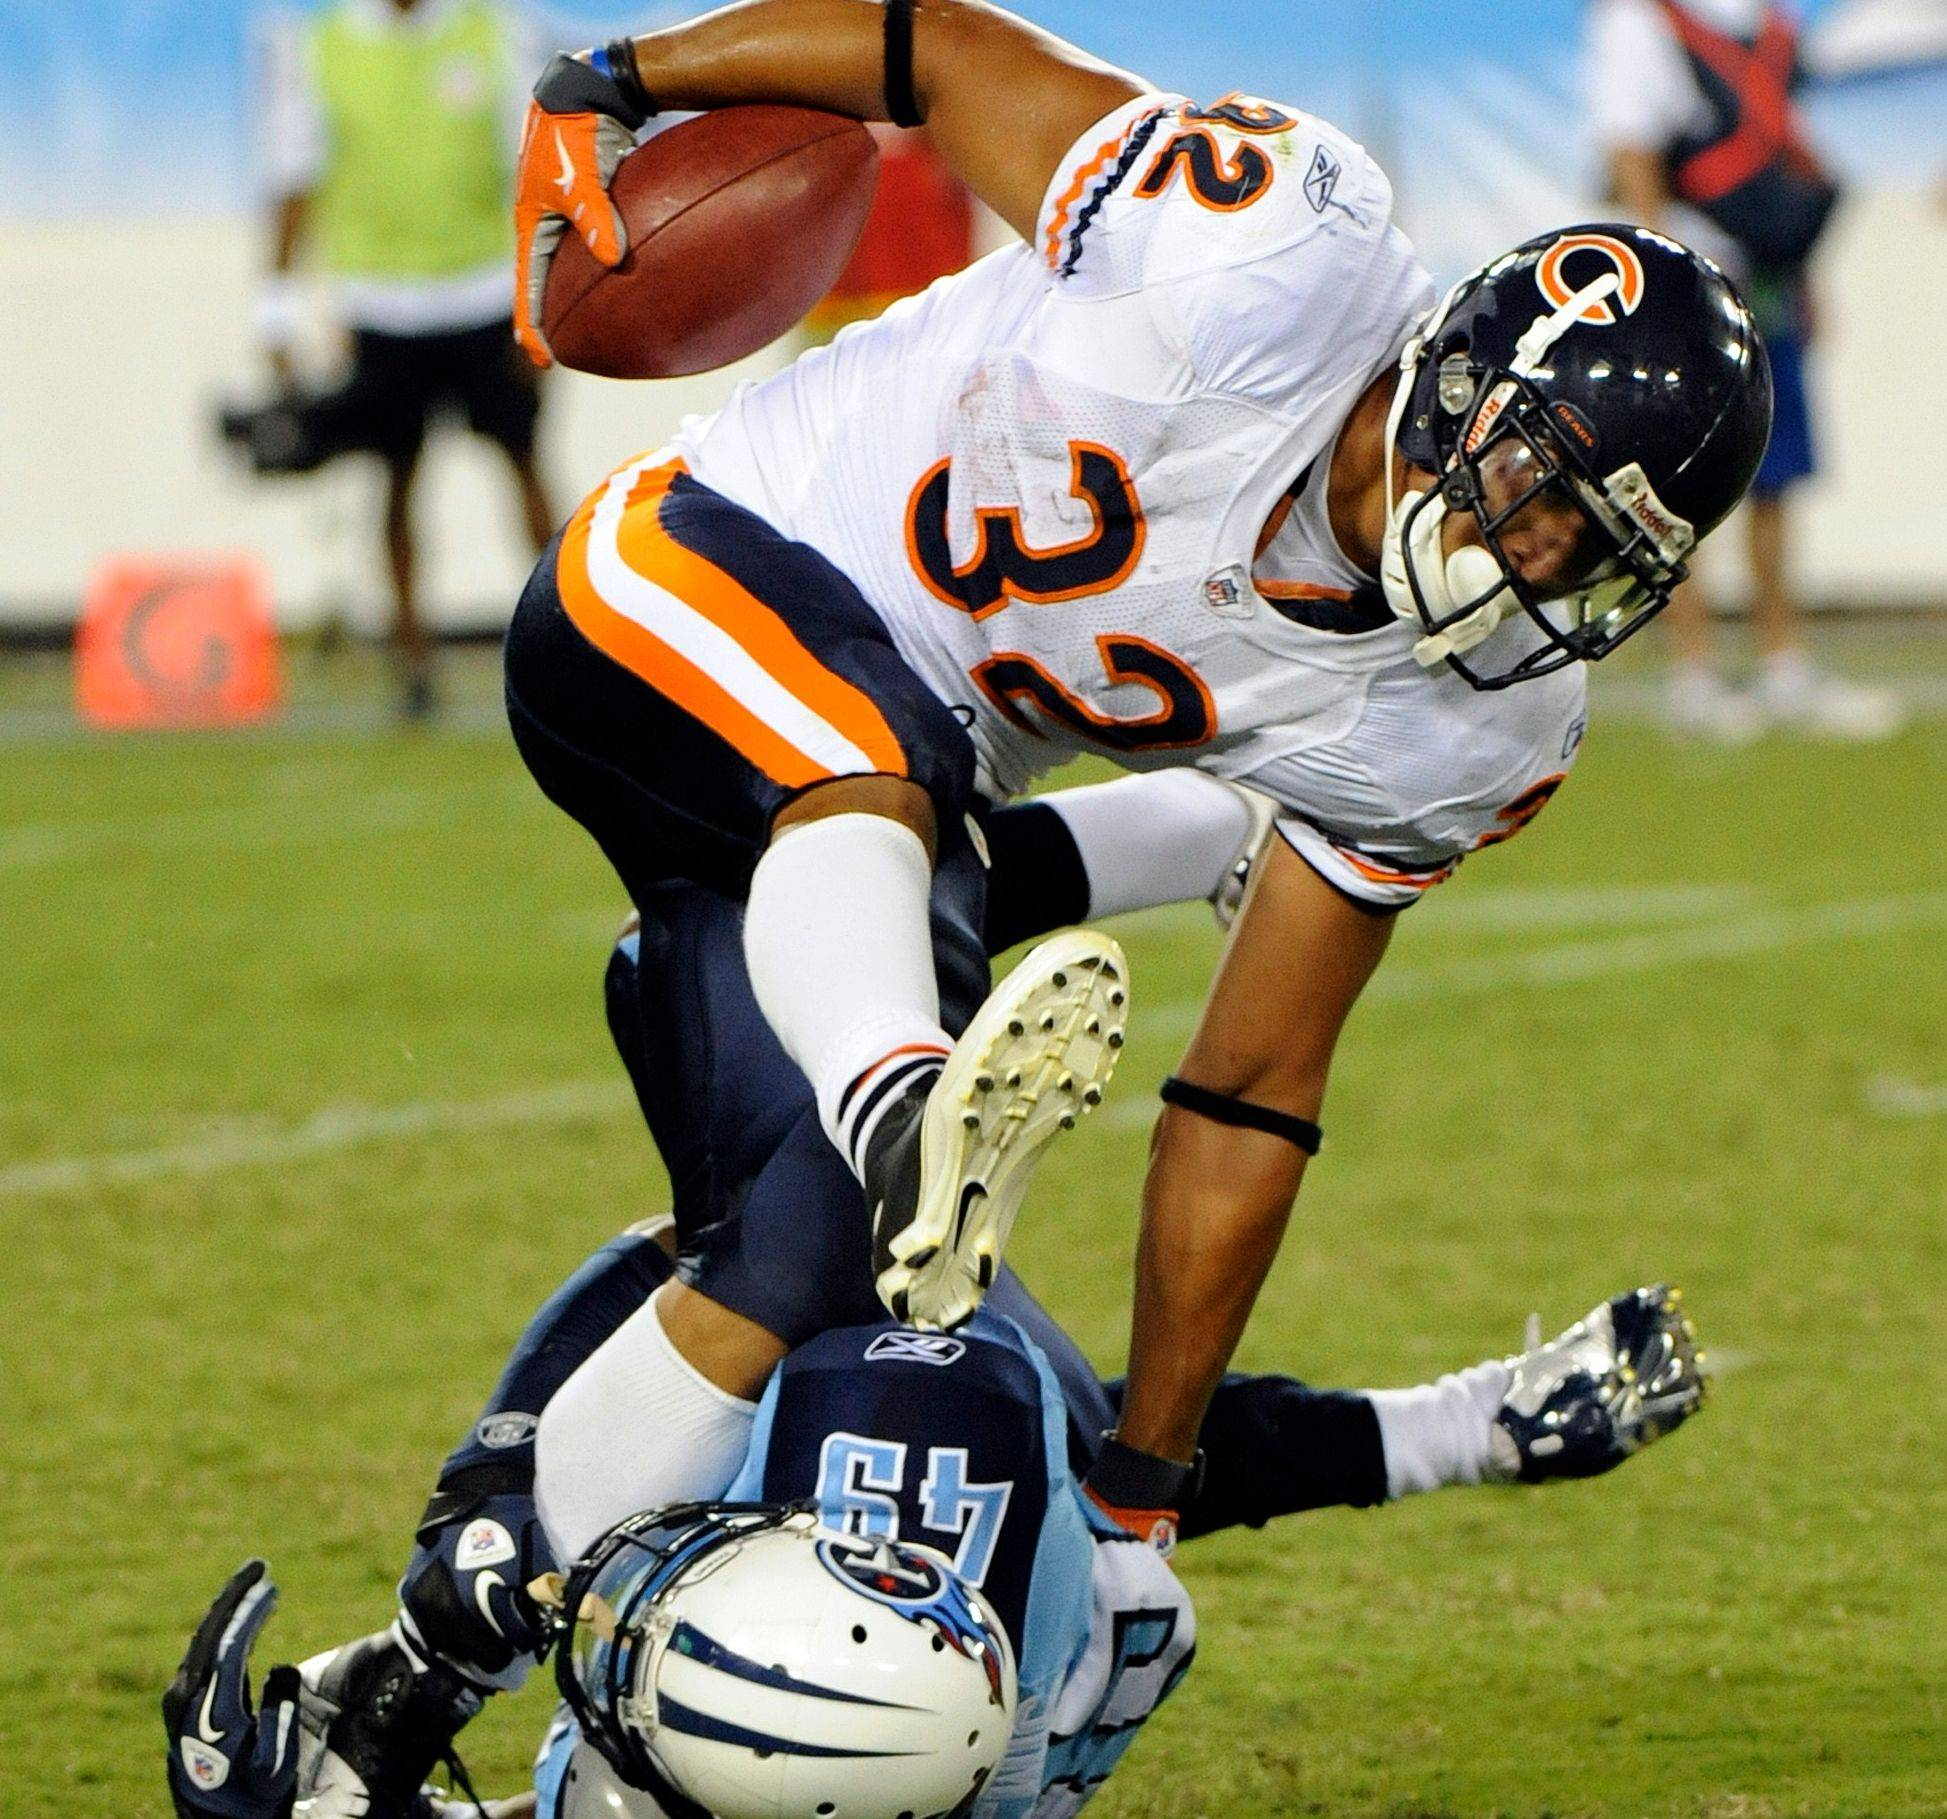 Bears running back Kahlil Bell is tripped up by Tennessee Titans cornerback LeQuan Lewis in a preseason game. Bell averaged 4.5 yards per carry in the preseason.